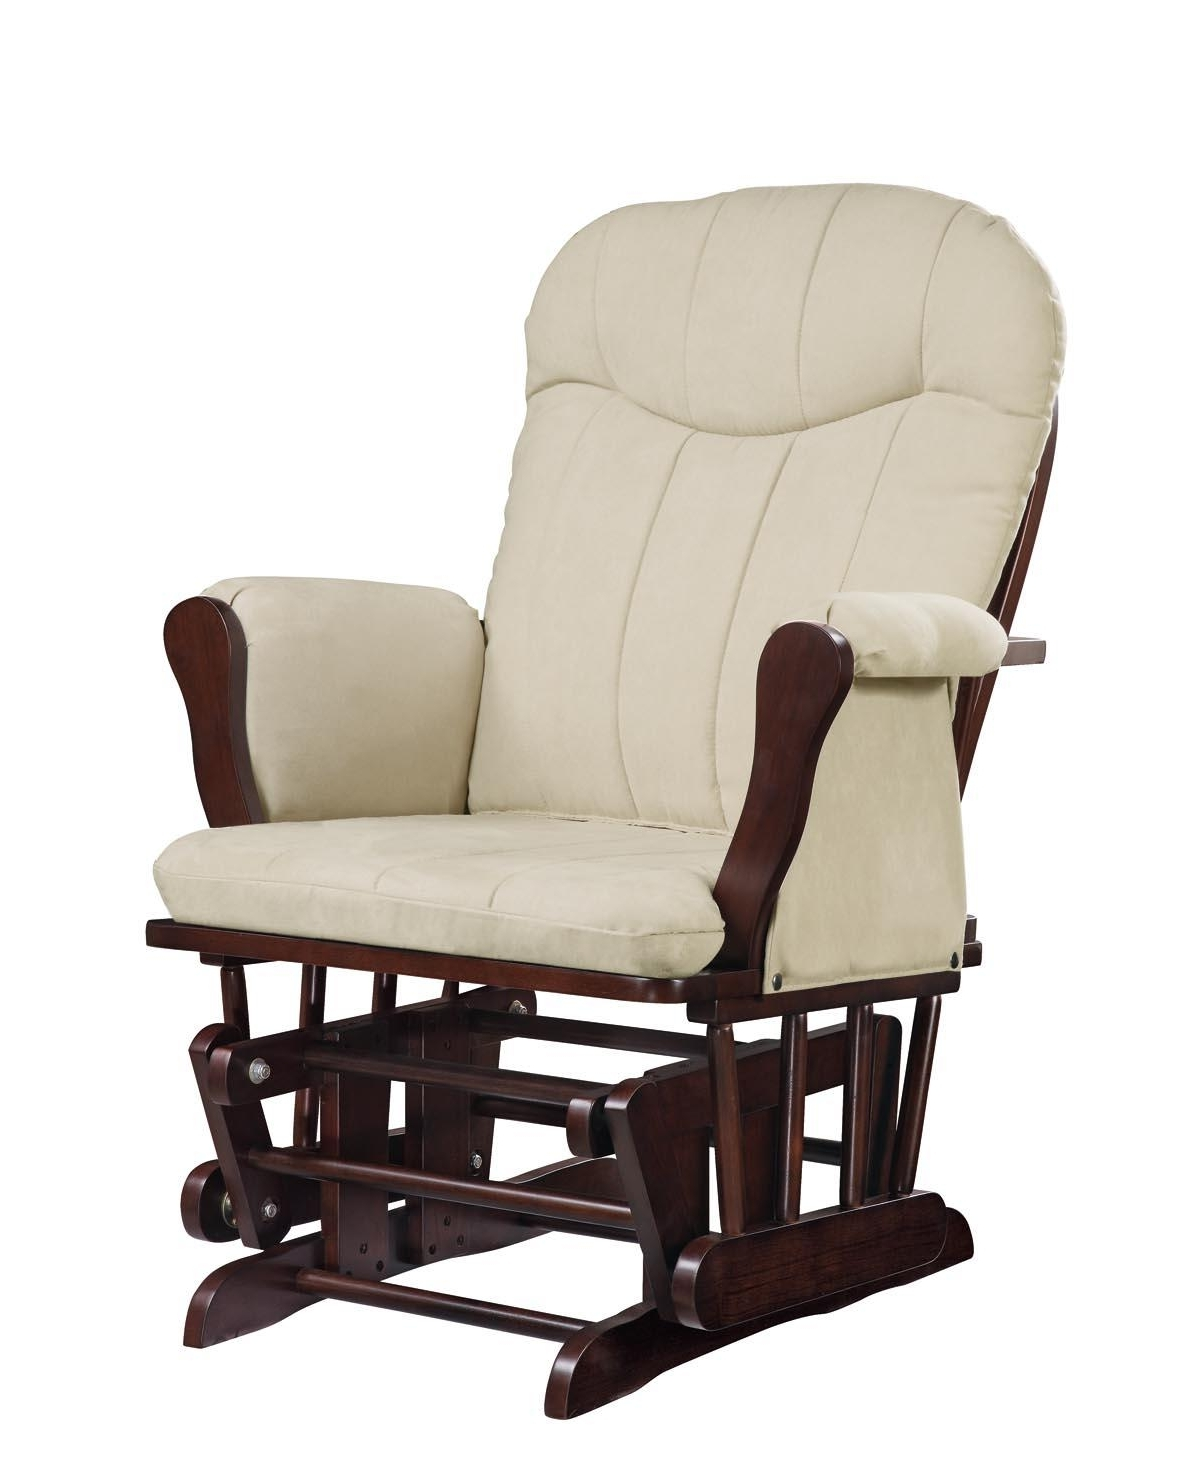 Arm Chair : Wood Frame Glider Rocking Chair Ikea , Throughout Famous Ikea Rocking Chairs (View 1 of 20)